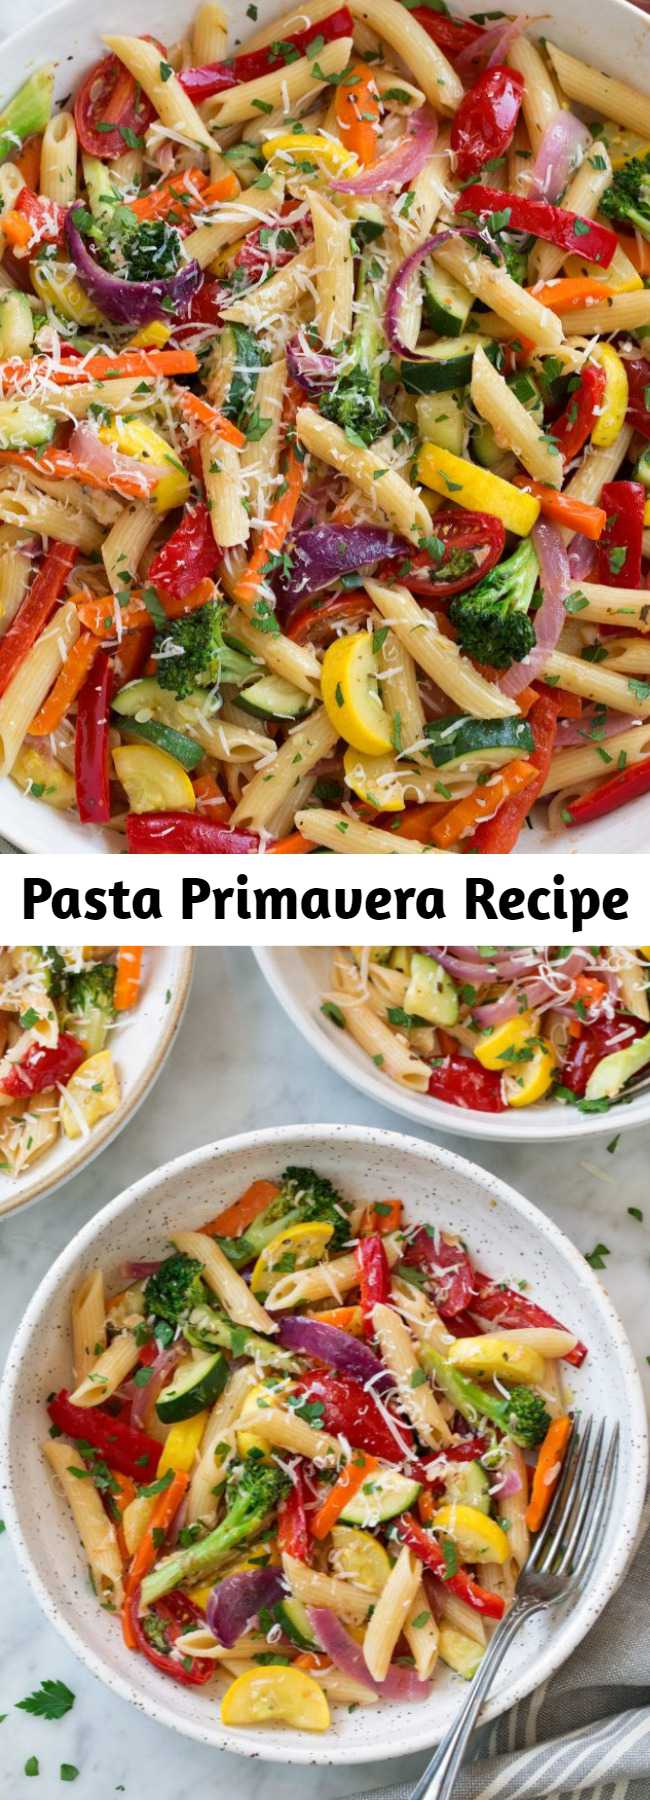 Pasta Primavera Recipe - This hearty, veggie packed pasta dish isn't just for spring and summer, this is a packed pasta dish that's perfect year round! It has such a satisfying flavor and it's versatile recipe so you can add different kinds of vegetables you might already have on hand. #pasta #primavera #dinner #recipe